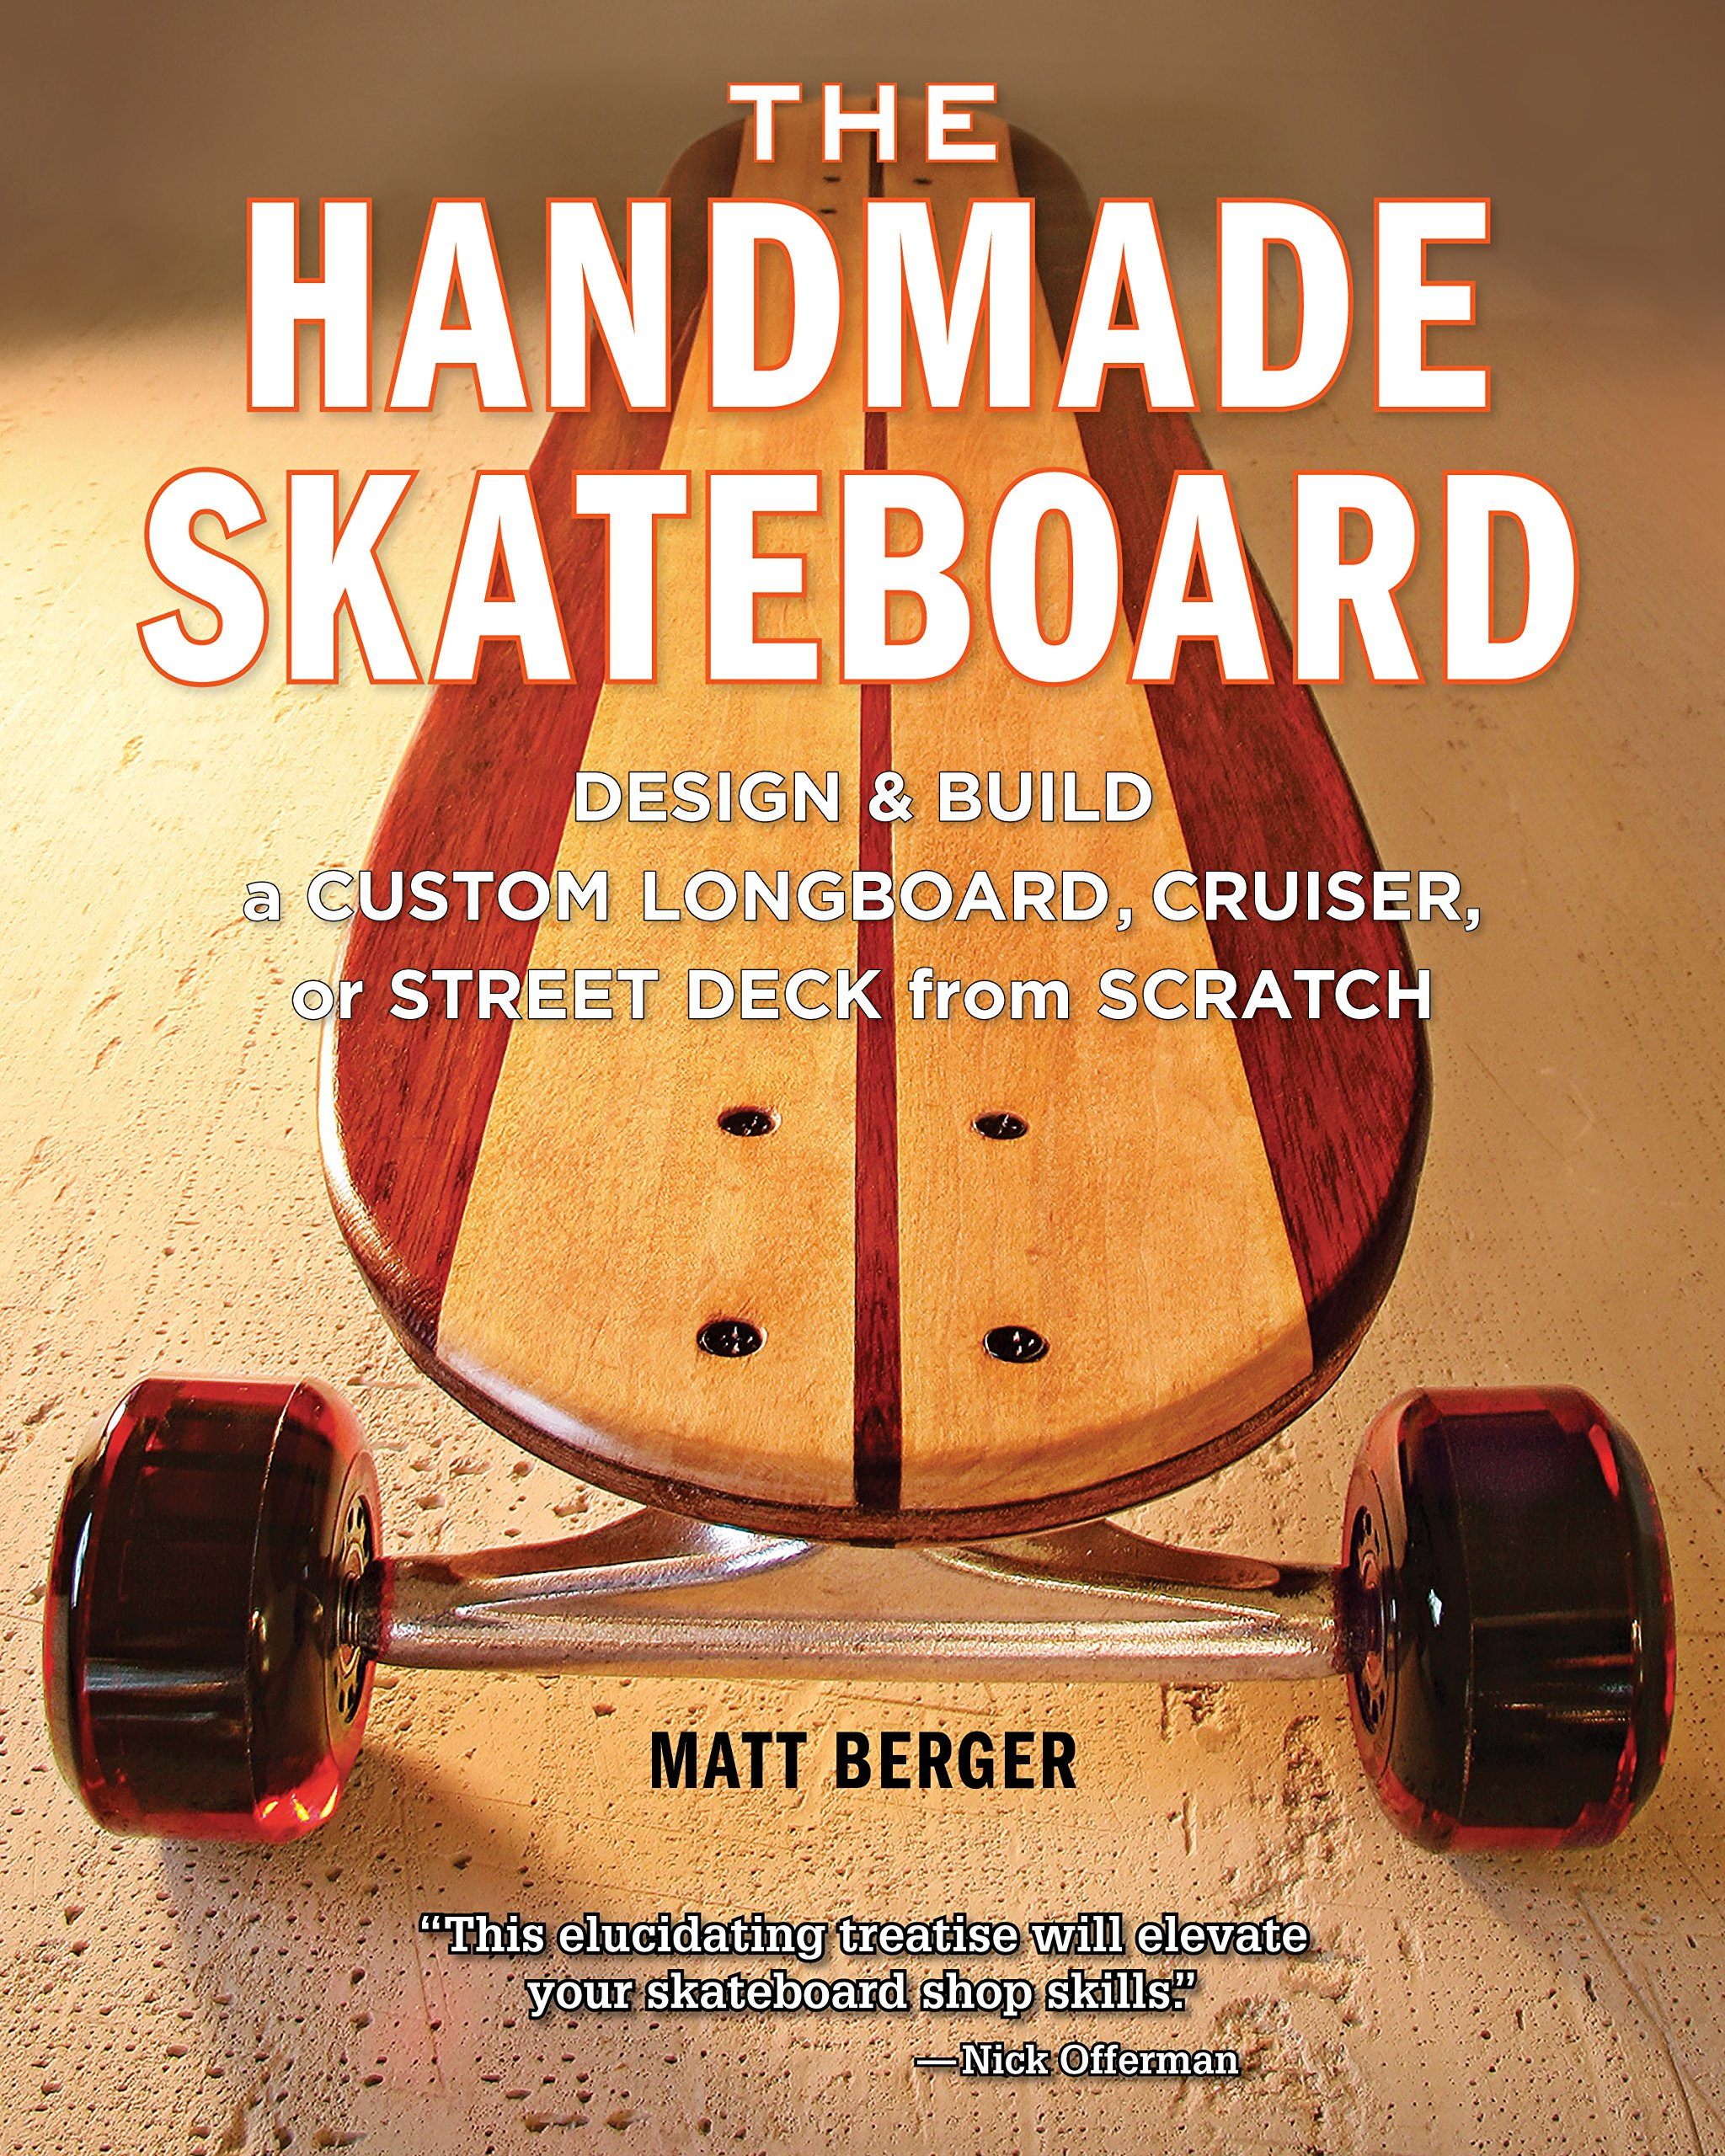 The Handmade Skateboard  Design And Build A Custom Longboard Cruiser Or Street Deck From Scratch